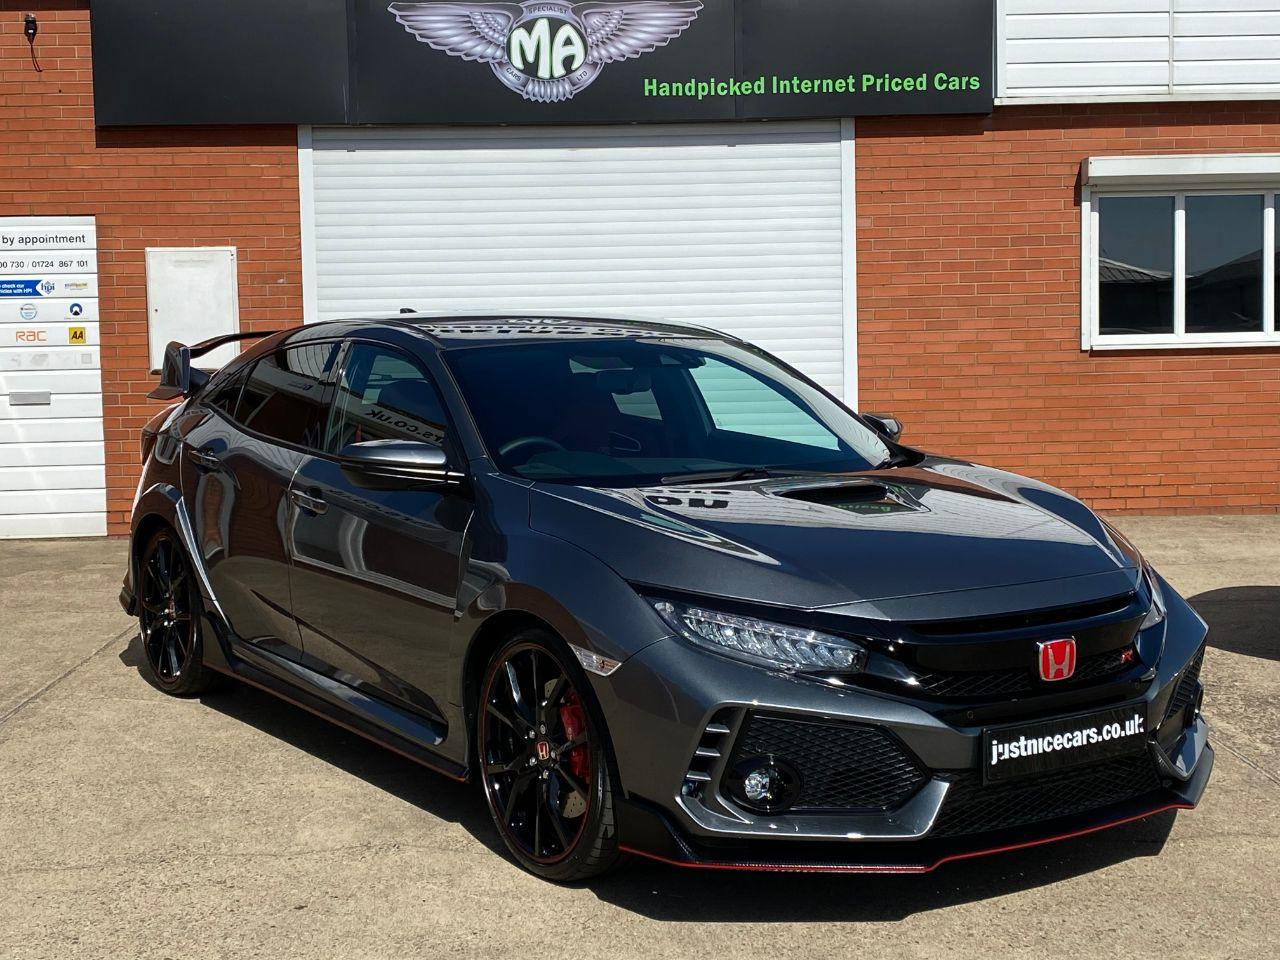 Honda Civic 2.0 VTEC Turbo Type R GT 5dr Hatchback Petrol Metal Grey